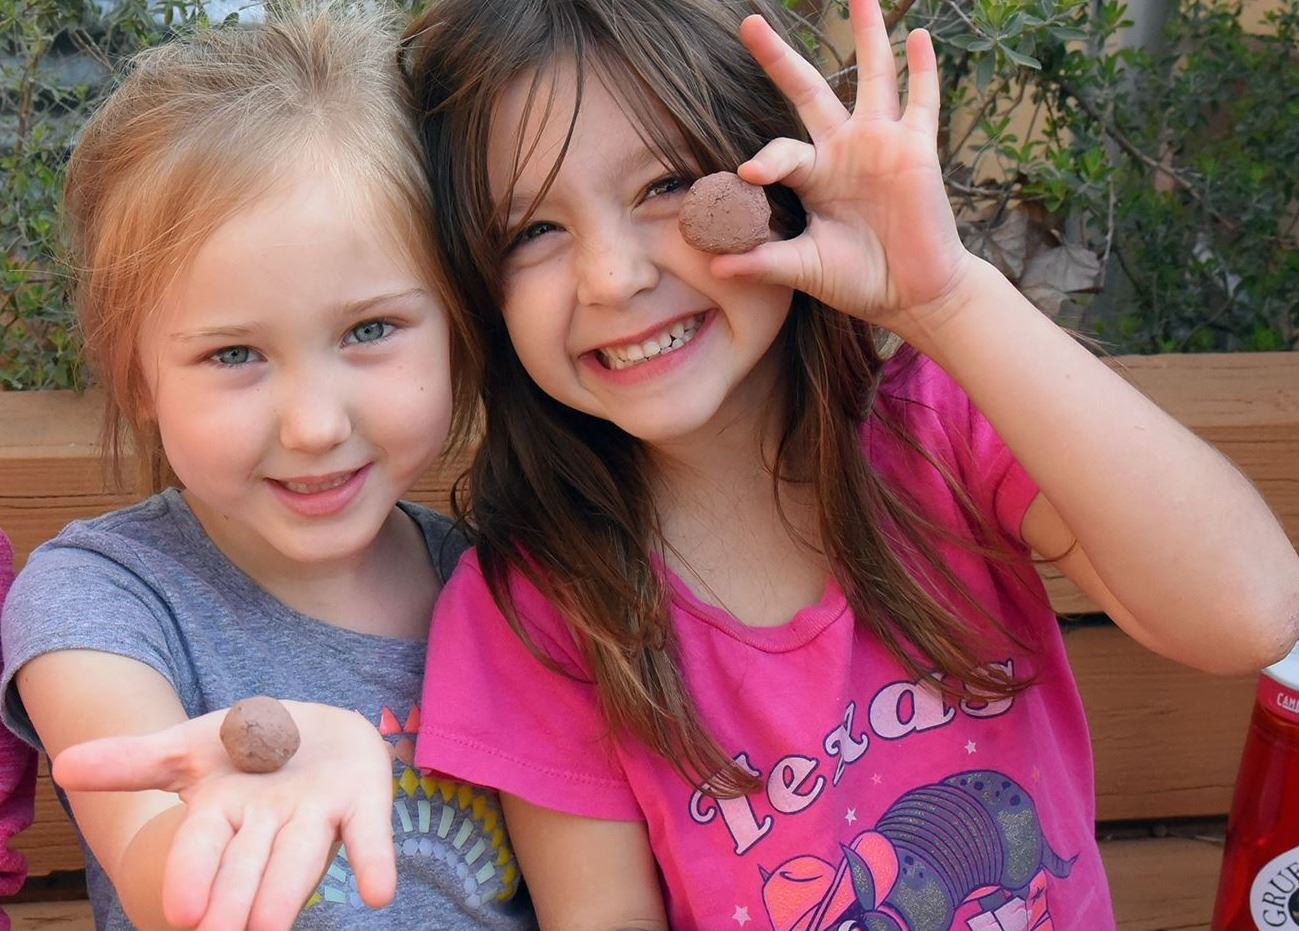 Olivia R. and Dottie A. at the San Marcos Discovery Center holding handmade seed balls. Seed Balls (